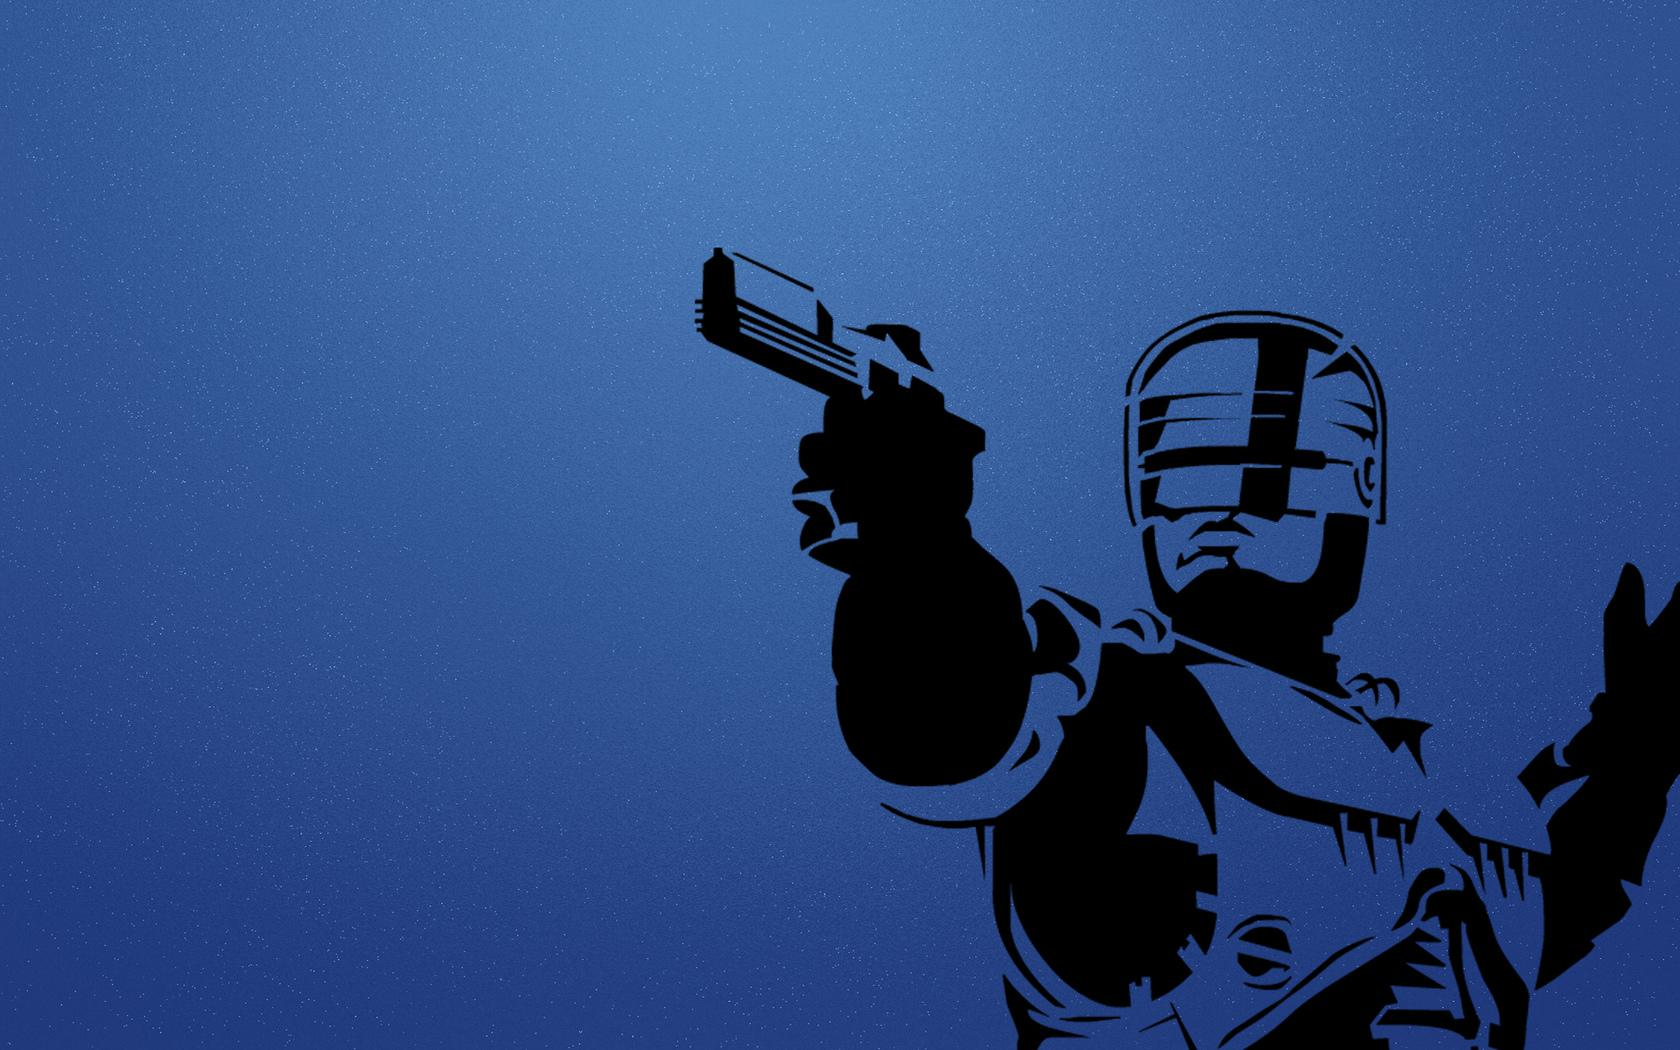 RoboCop Artistic wallpapers HD quality